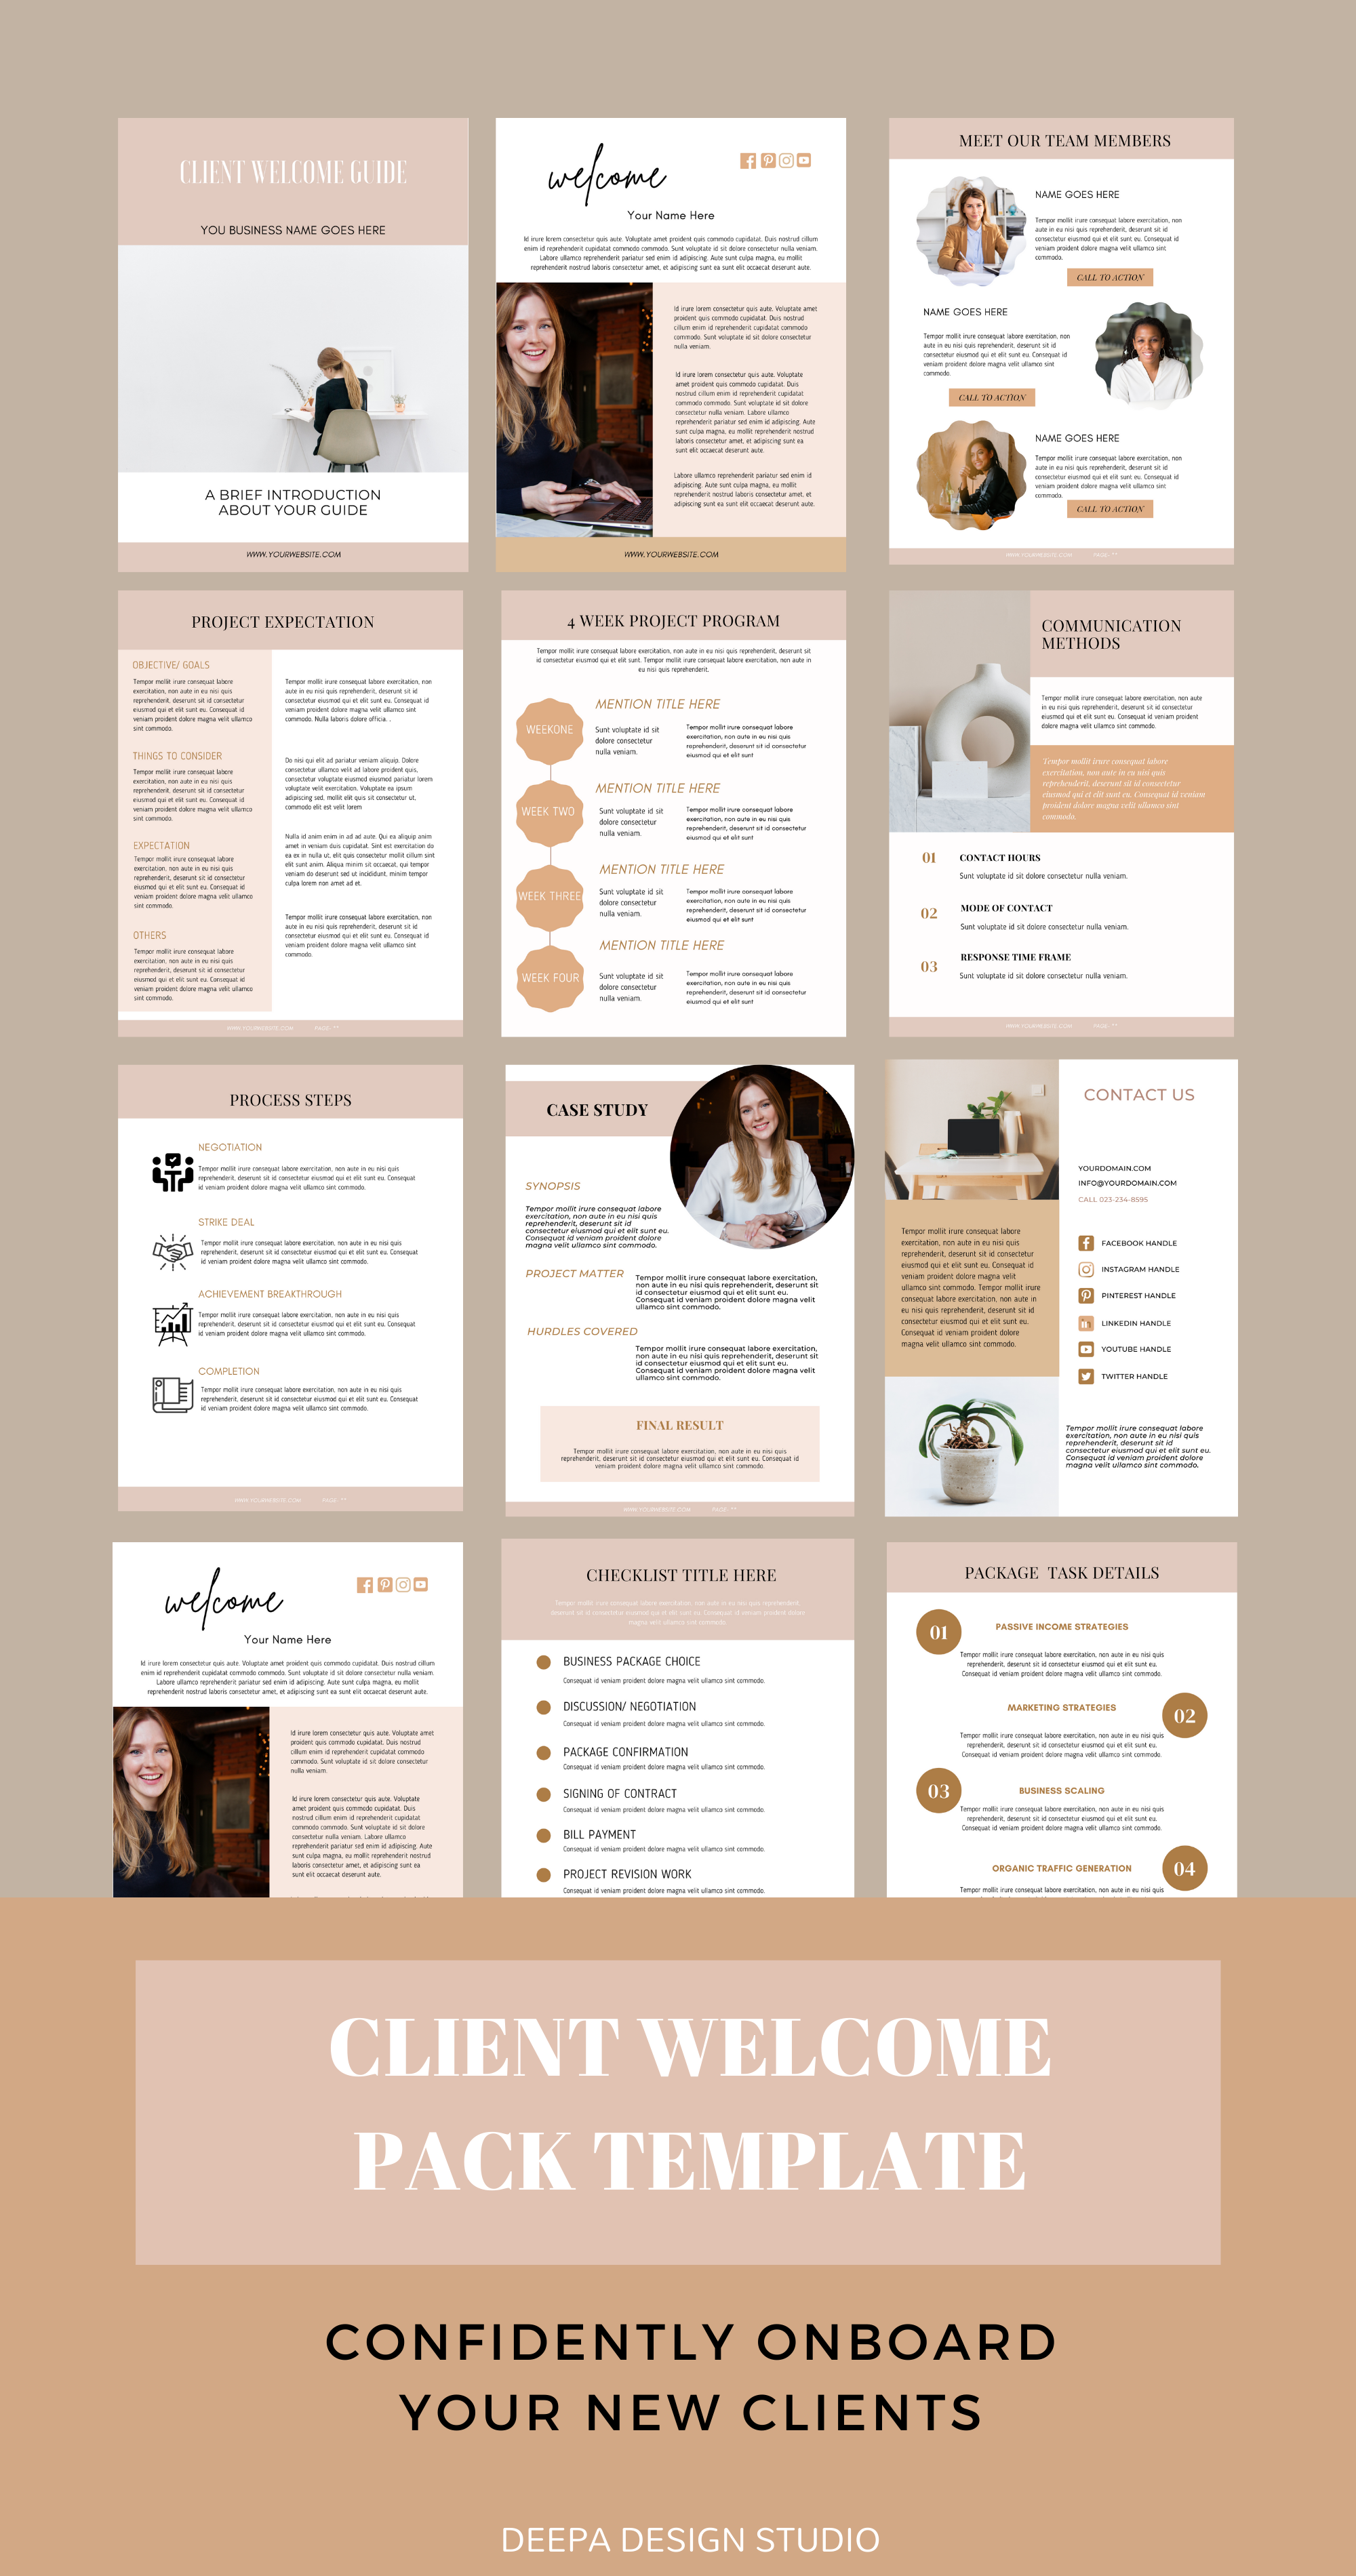 Client Welcome Pack Template Canva Business Proposal Template Virtual Assistant Service Guide Onboarding Template Welcome Guide In 2021 Client Welcome Pack Business Proposal Pricing Guides Templates